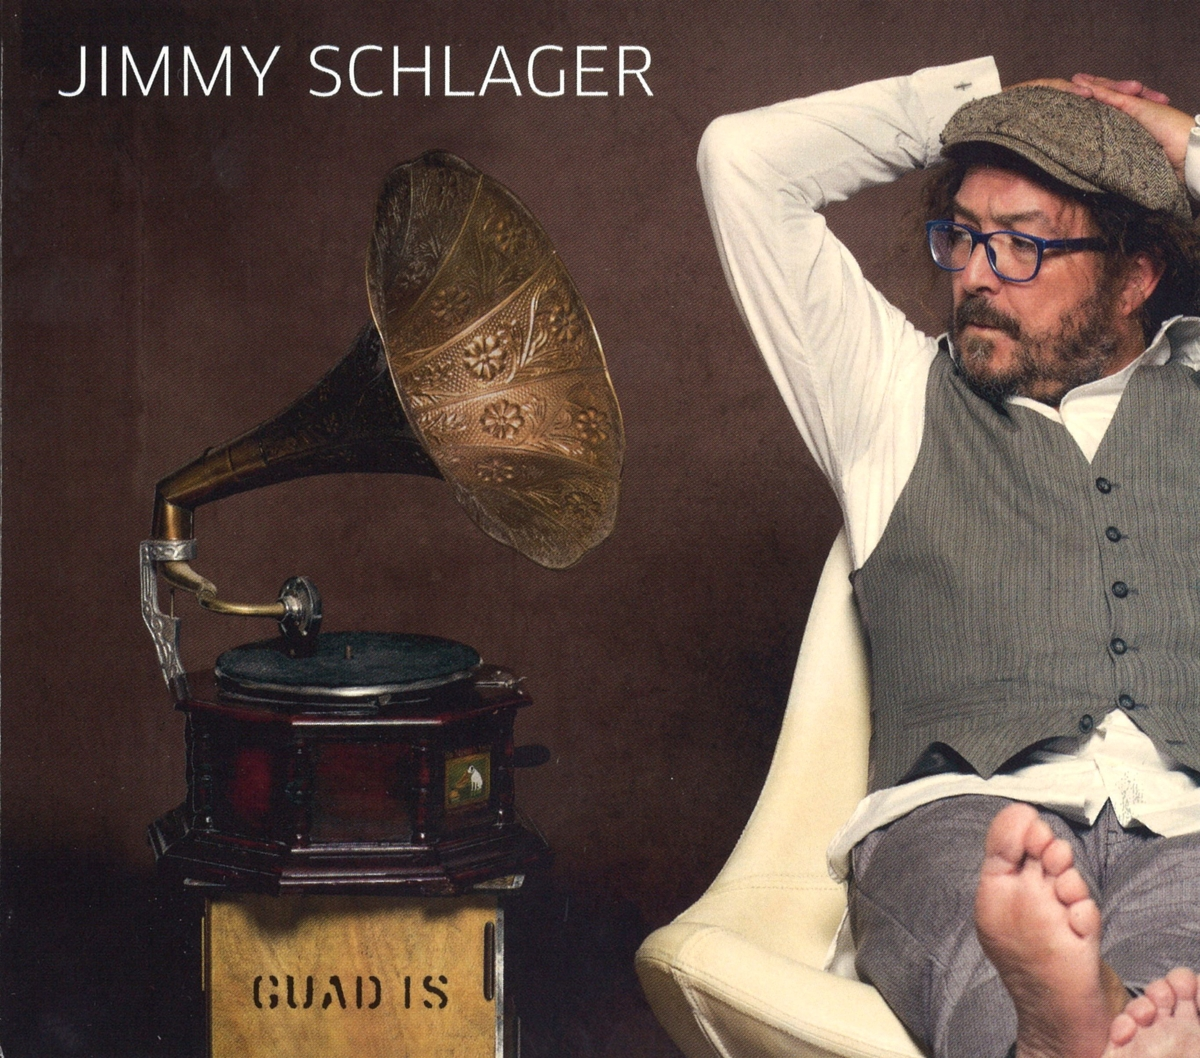 Jimmy-Schlager-Guad-is